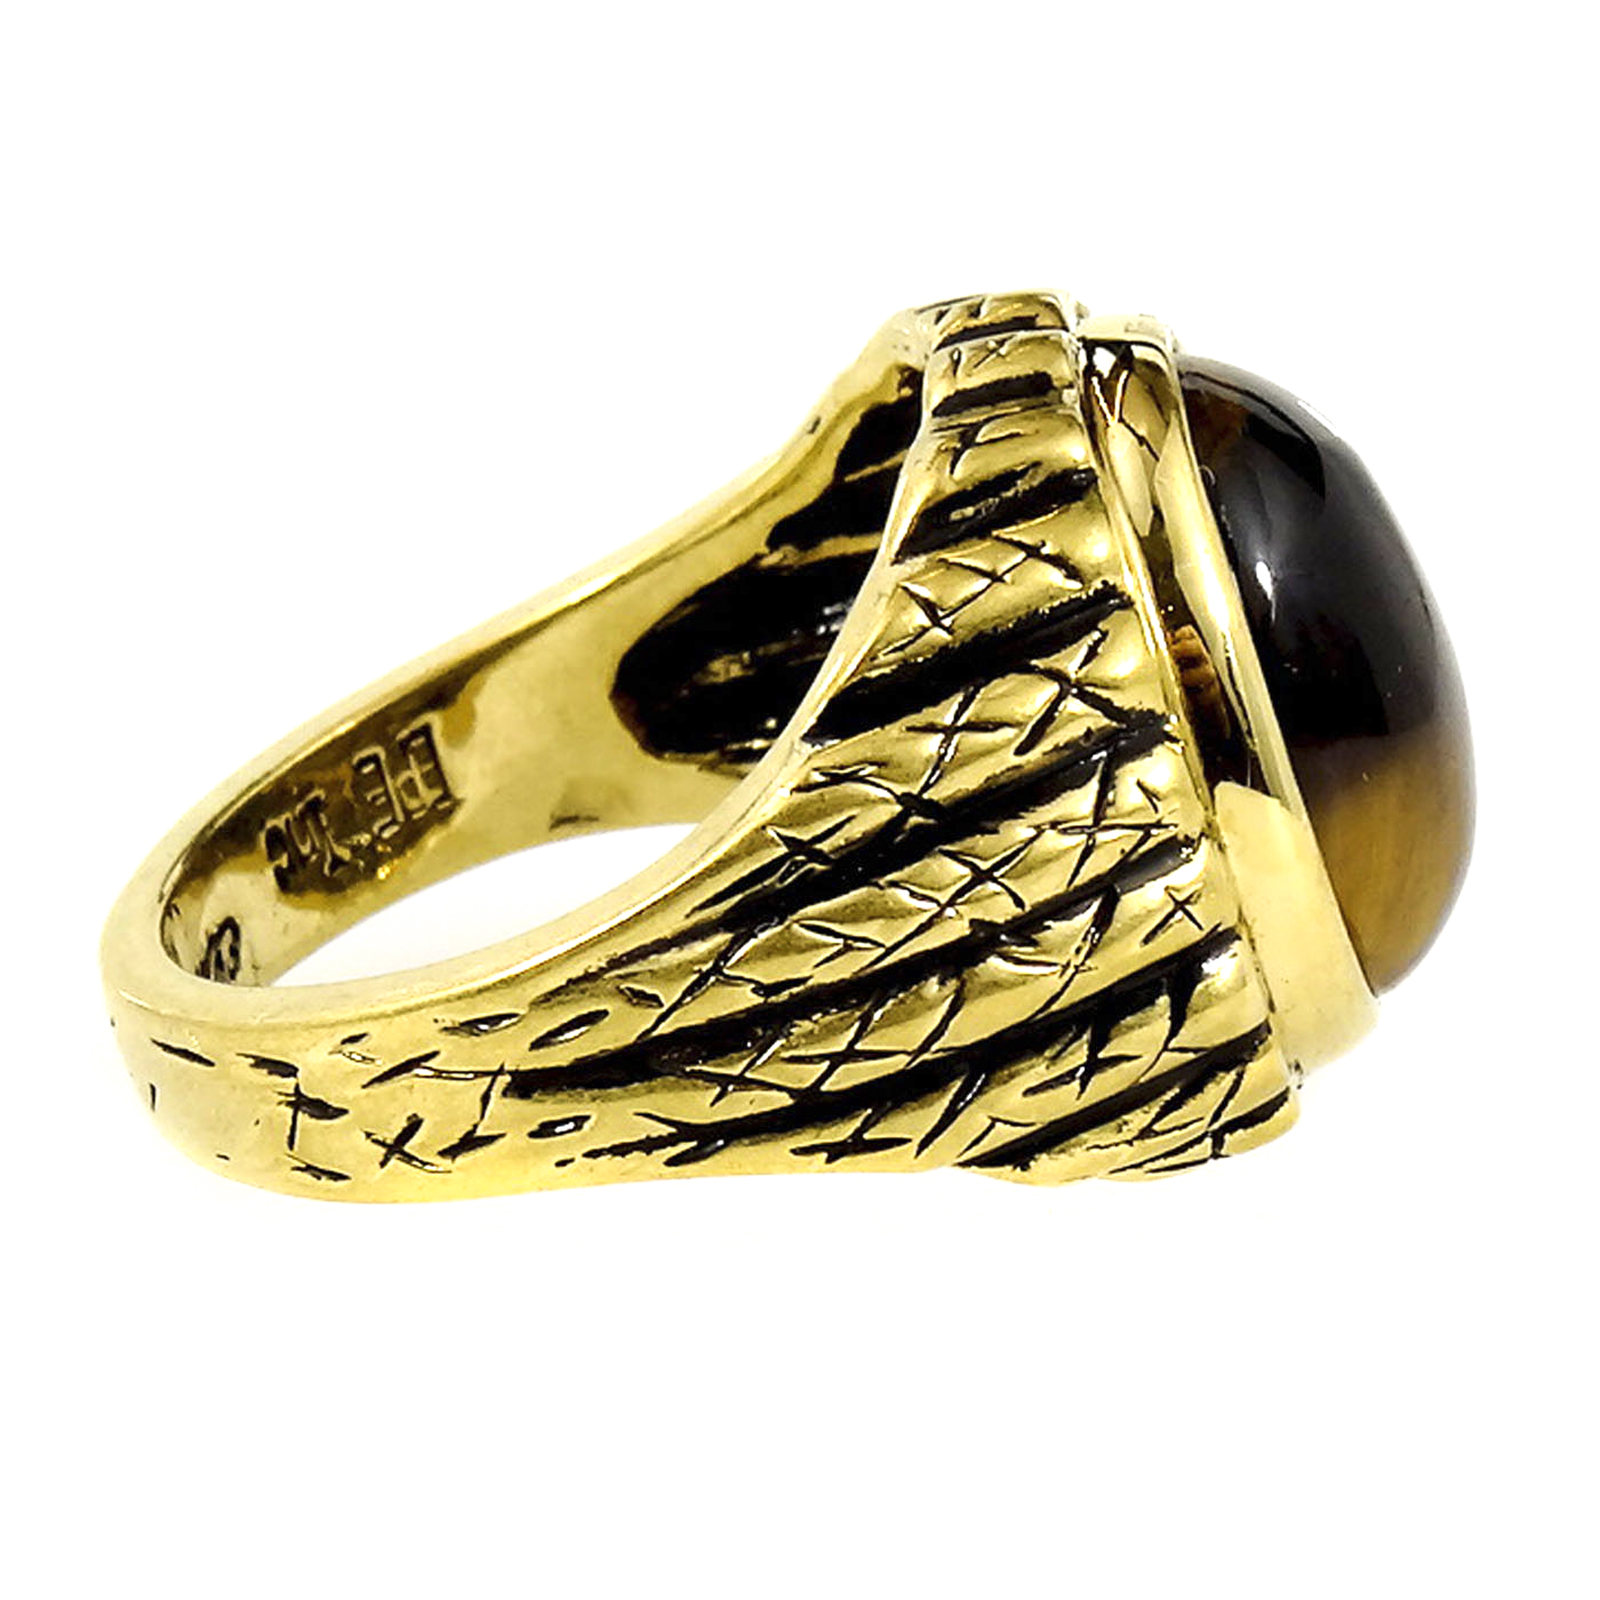 and time benefits tiger its rings stone from tigers to eye meaning